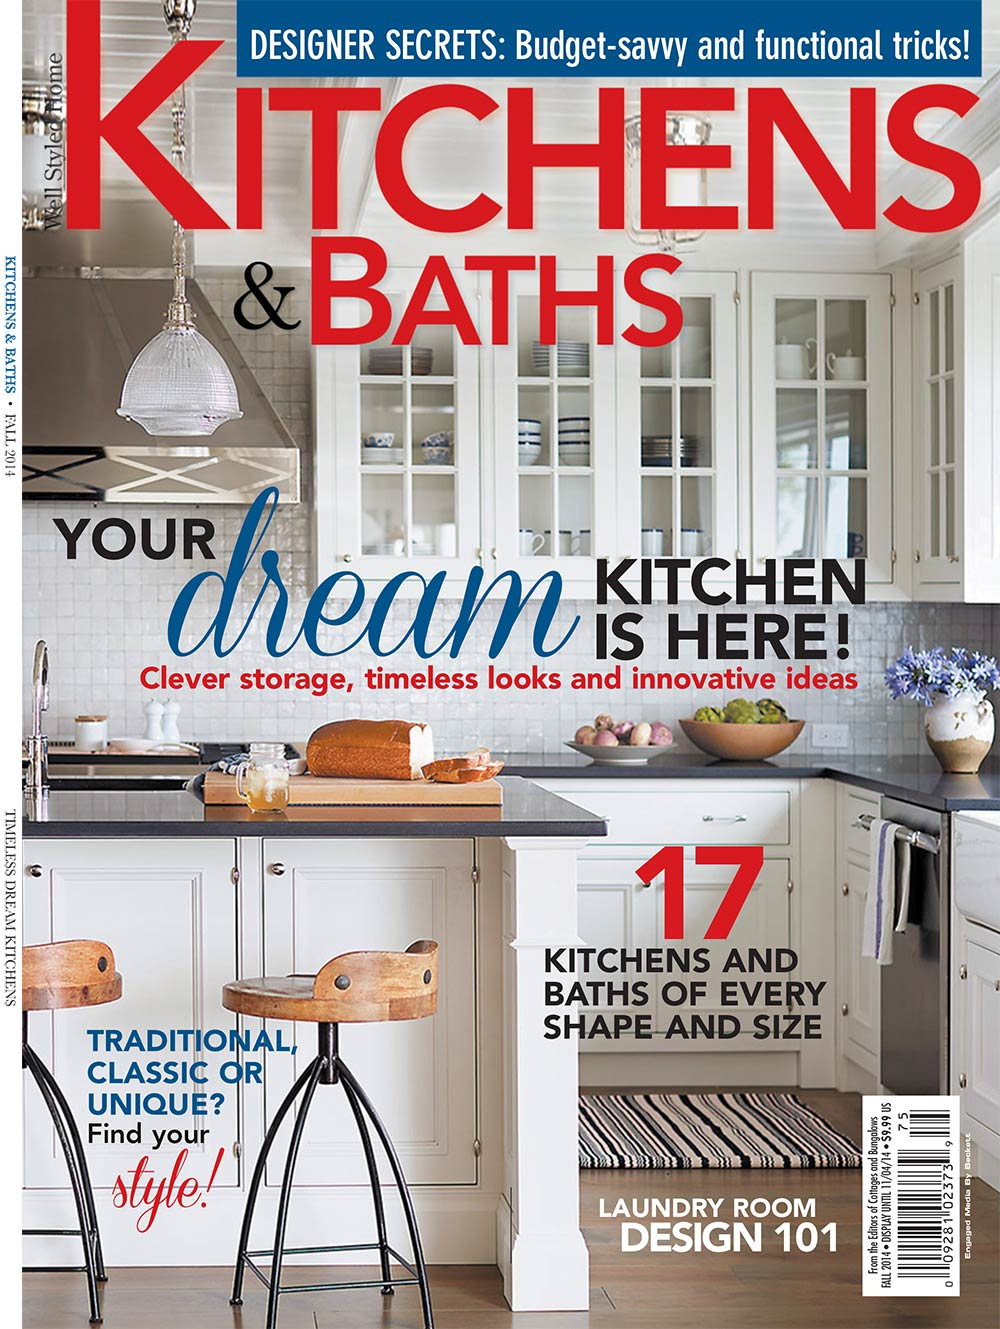 Kitchen and bath design magazine Queensland kitchen and bathroom design magazine